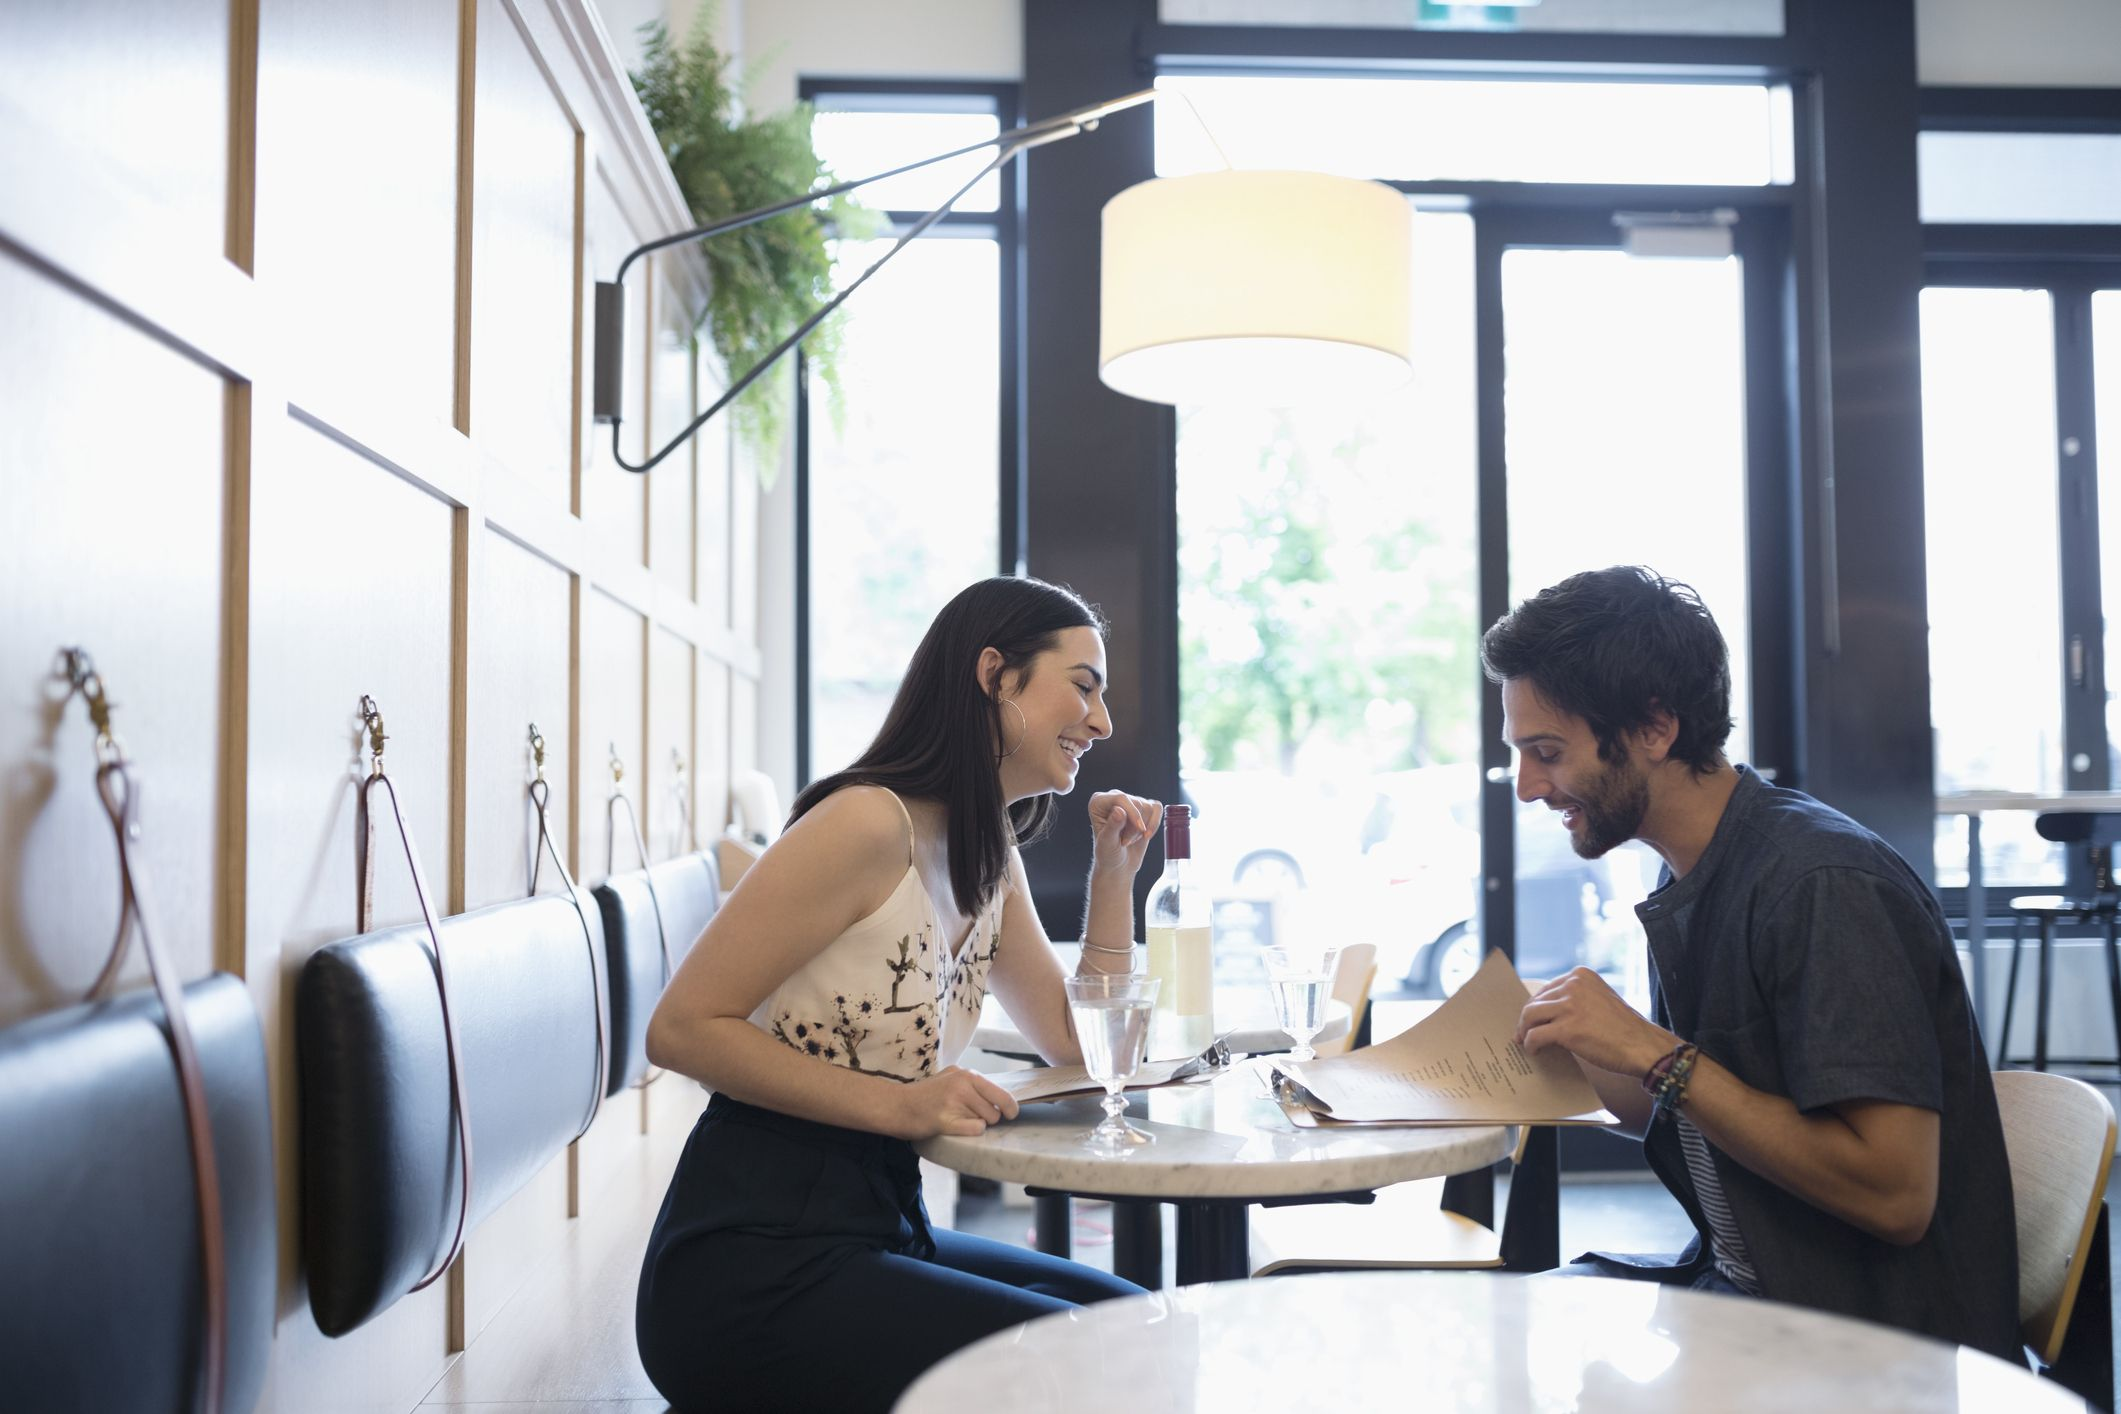 Questions to ask a woman on a first date